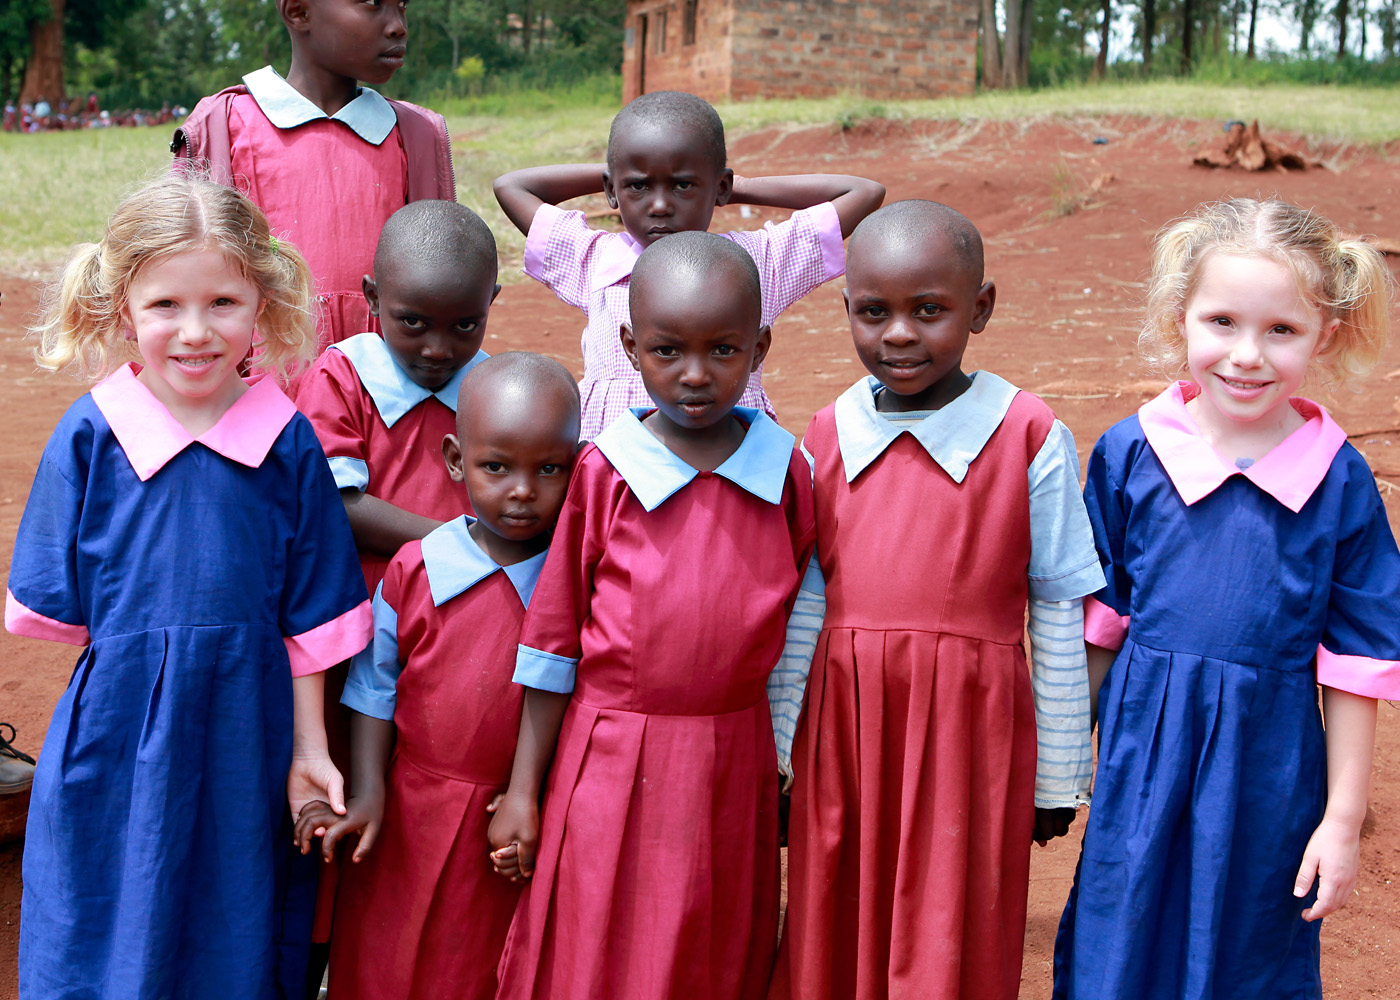 Ava and her twin sister Elise with students of Ndikwe School